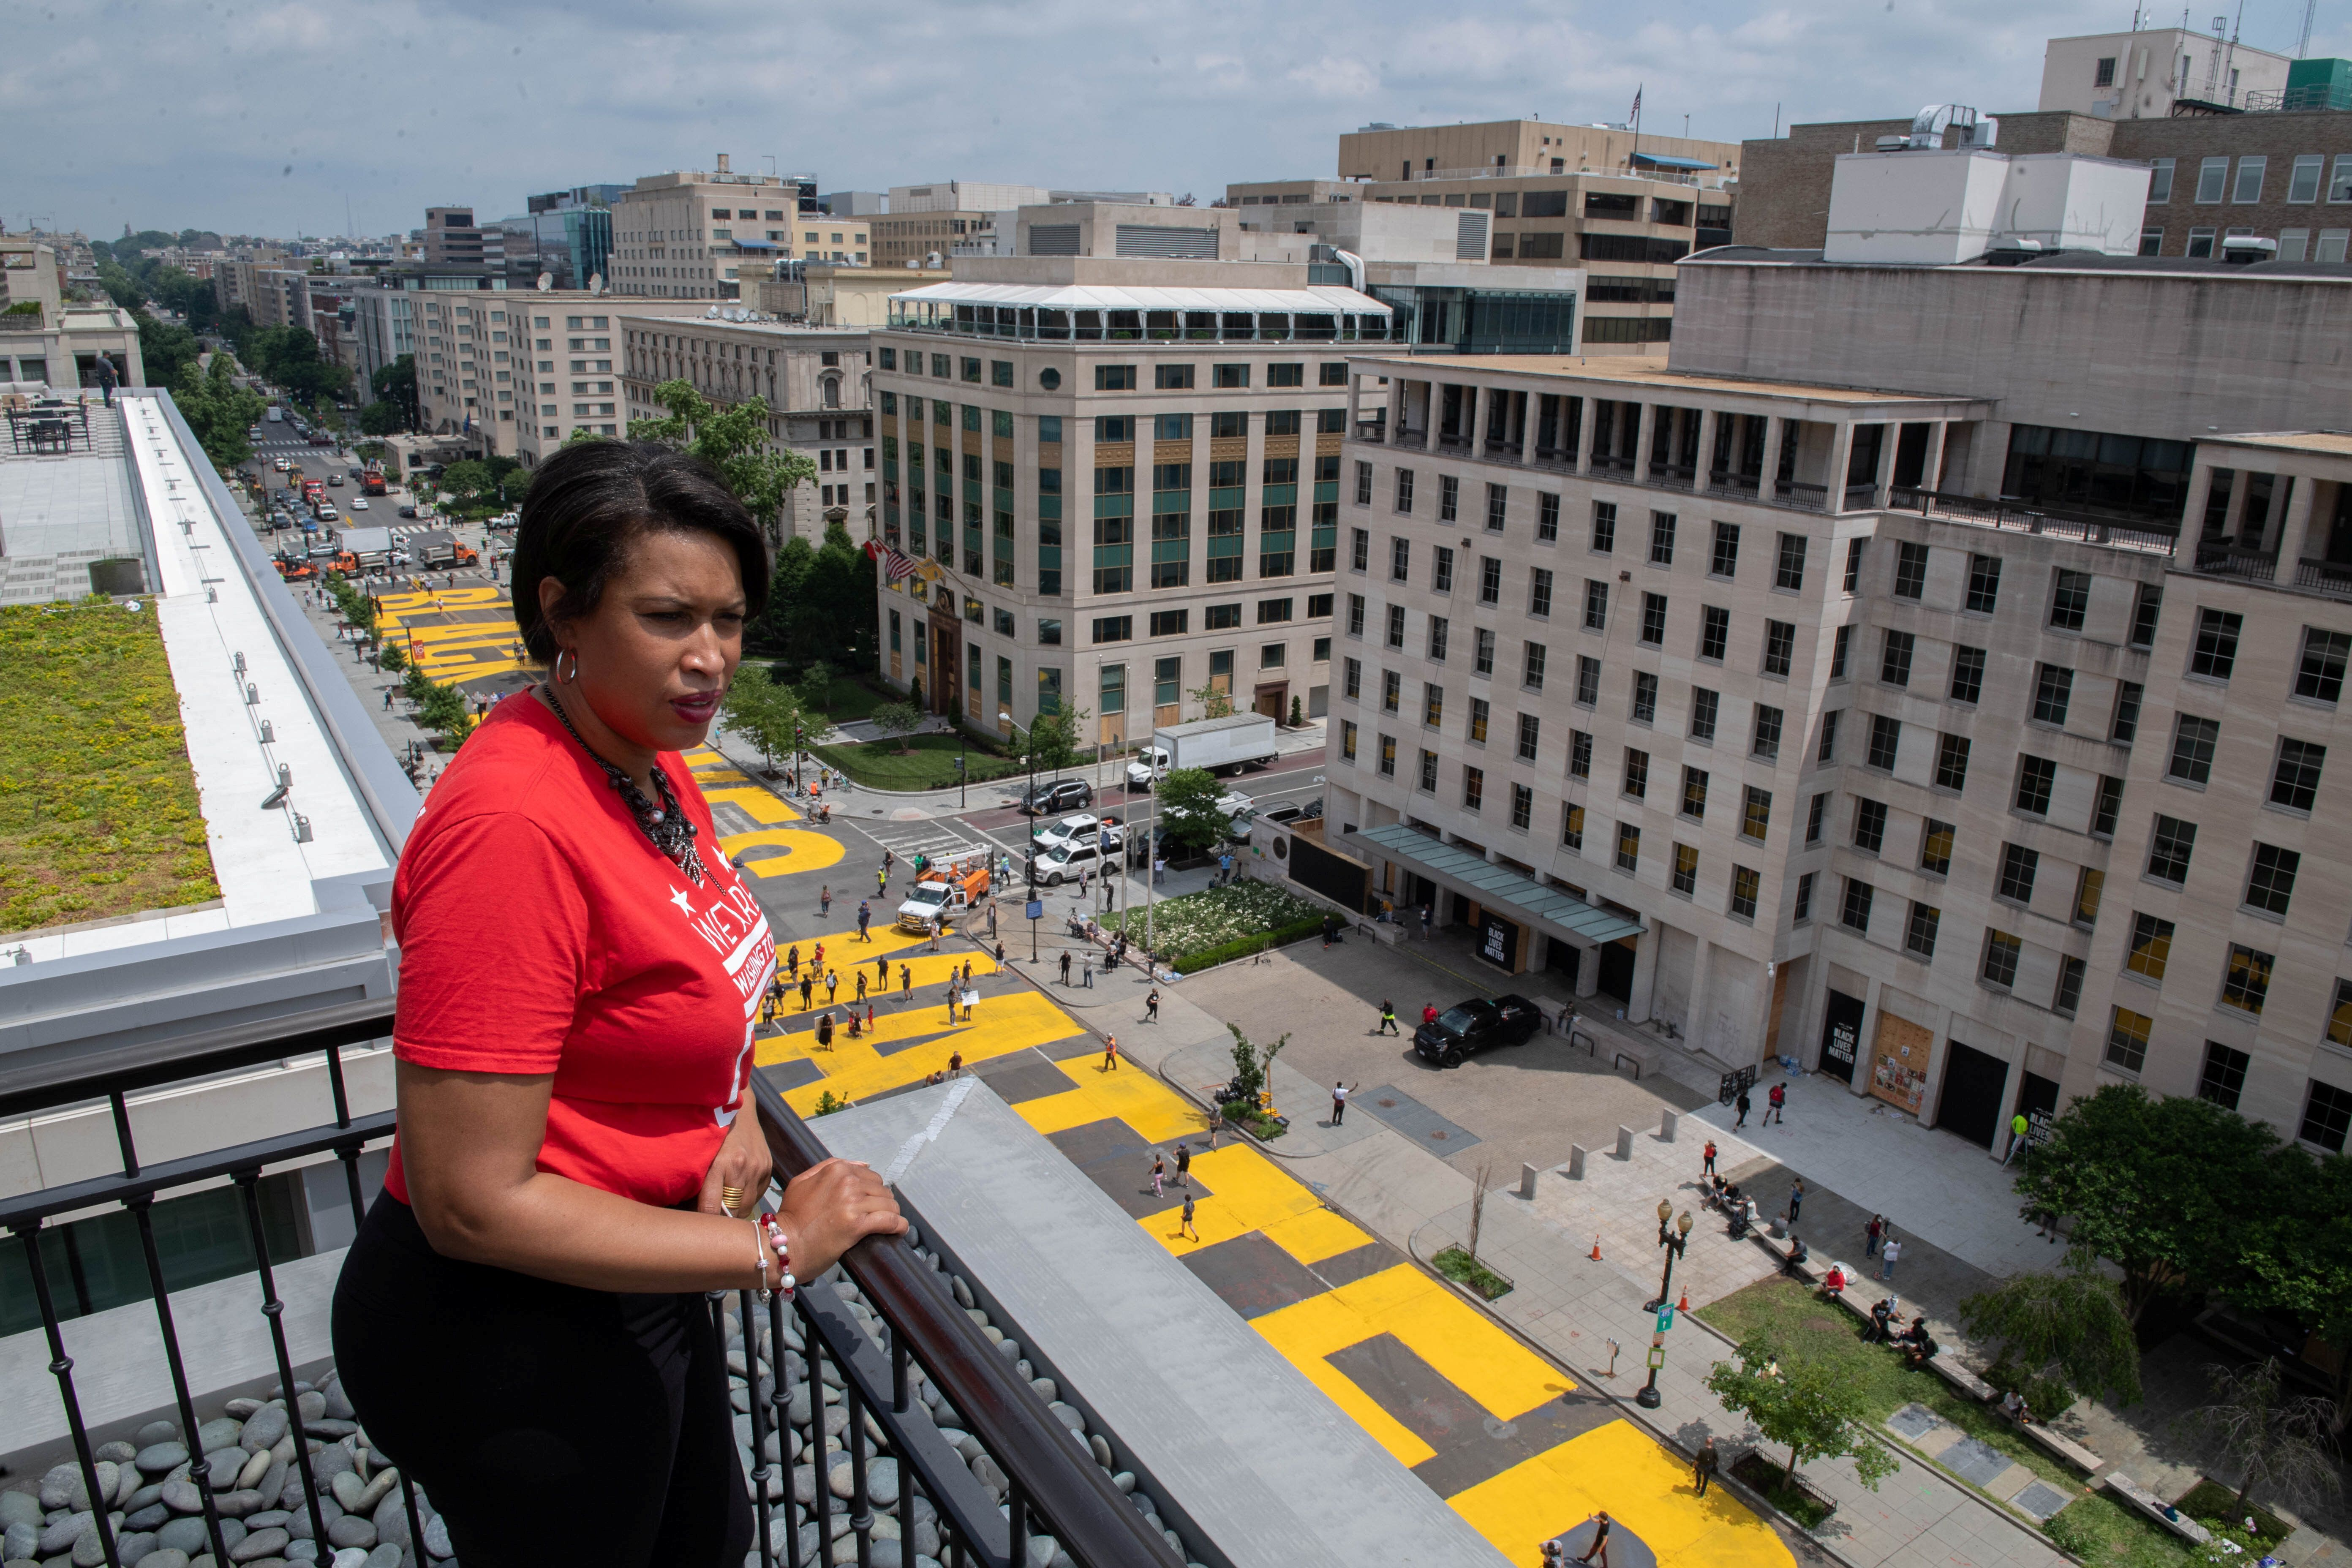 Mayor Muriel Bowser looks out over a Black Lives Matter sign that was painted during anti-racism protests in Washington, D.C.